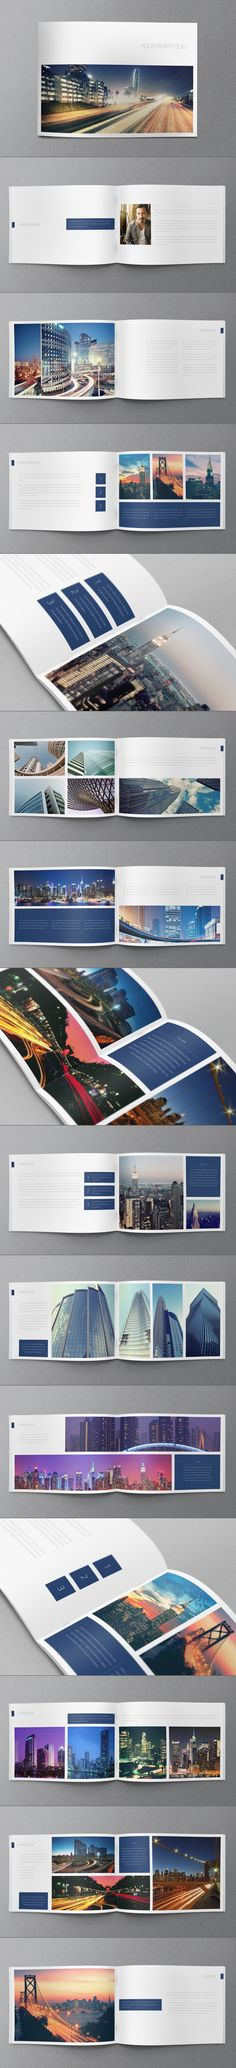 #design Minimal Brochure Design by Abra Design, via Behance